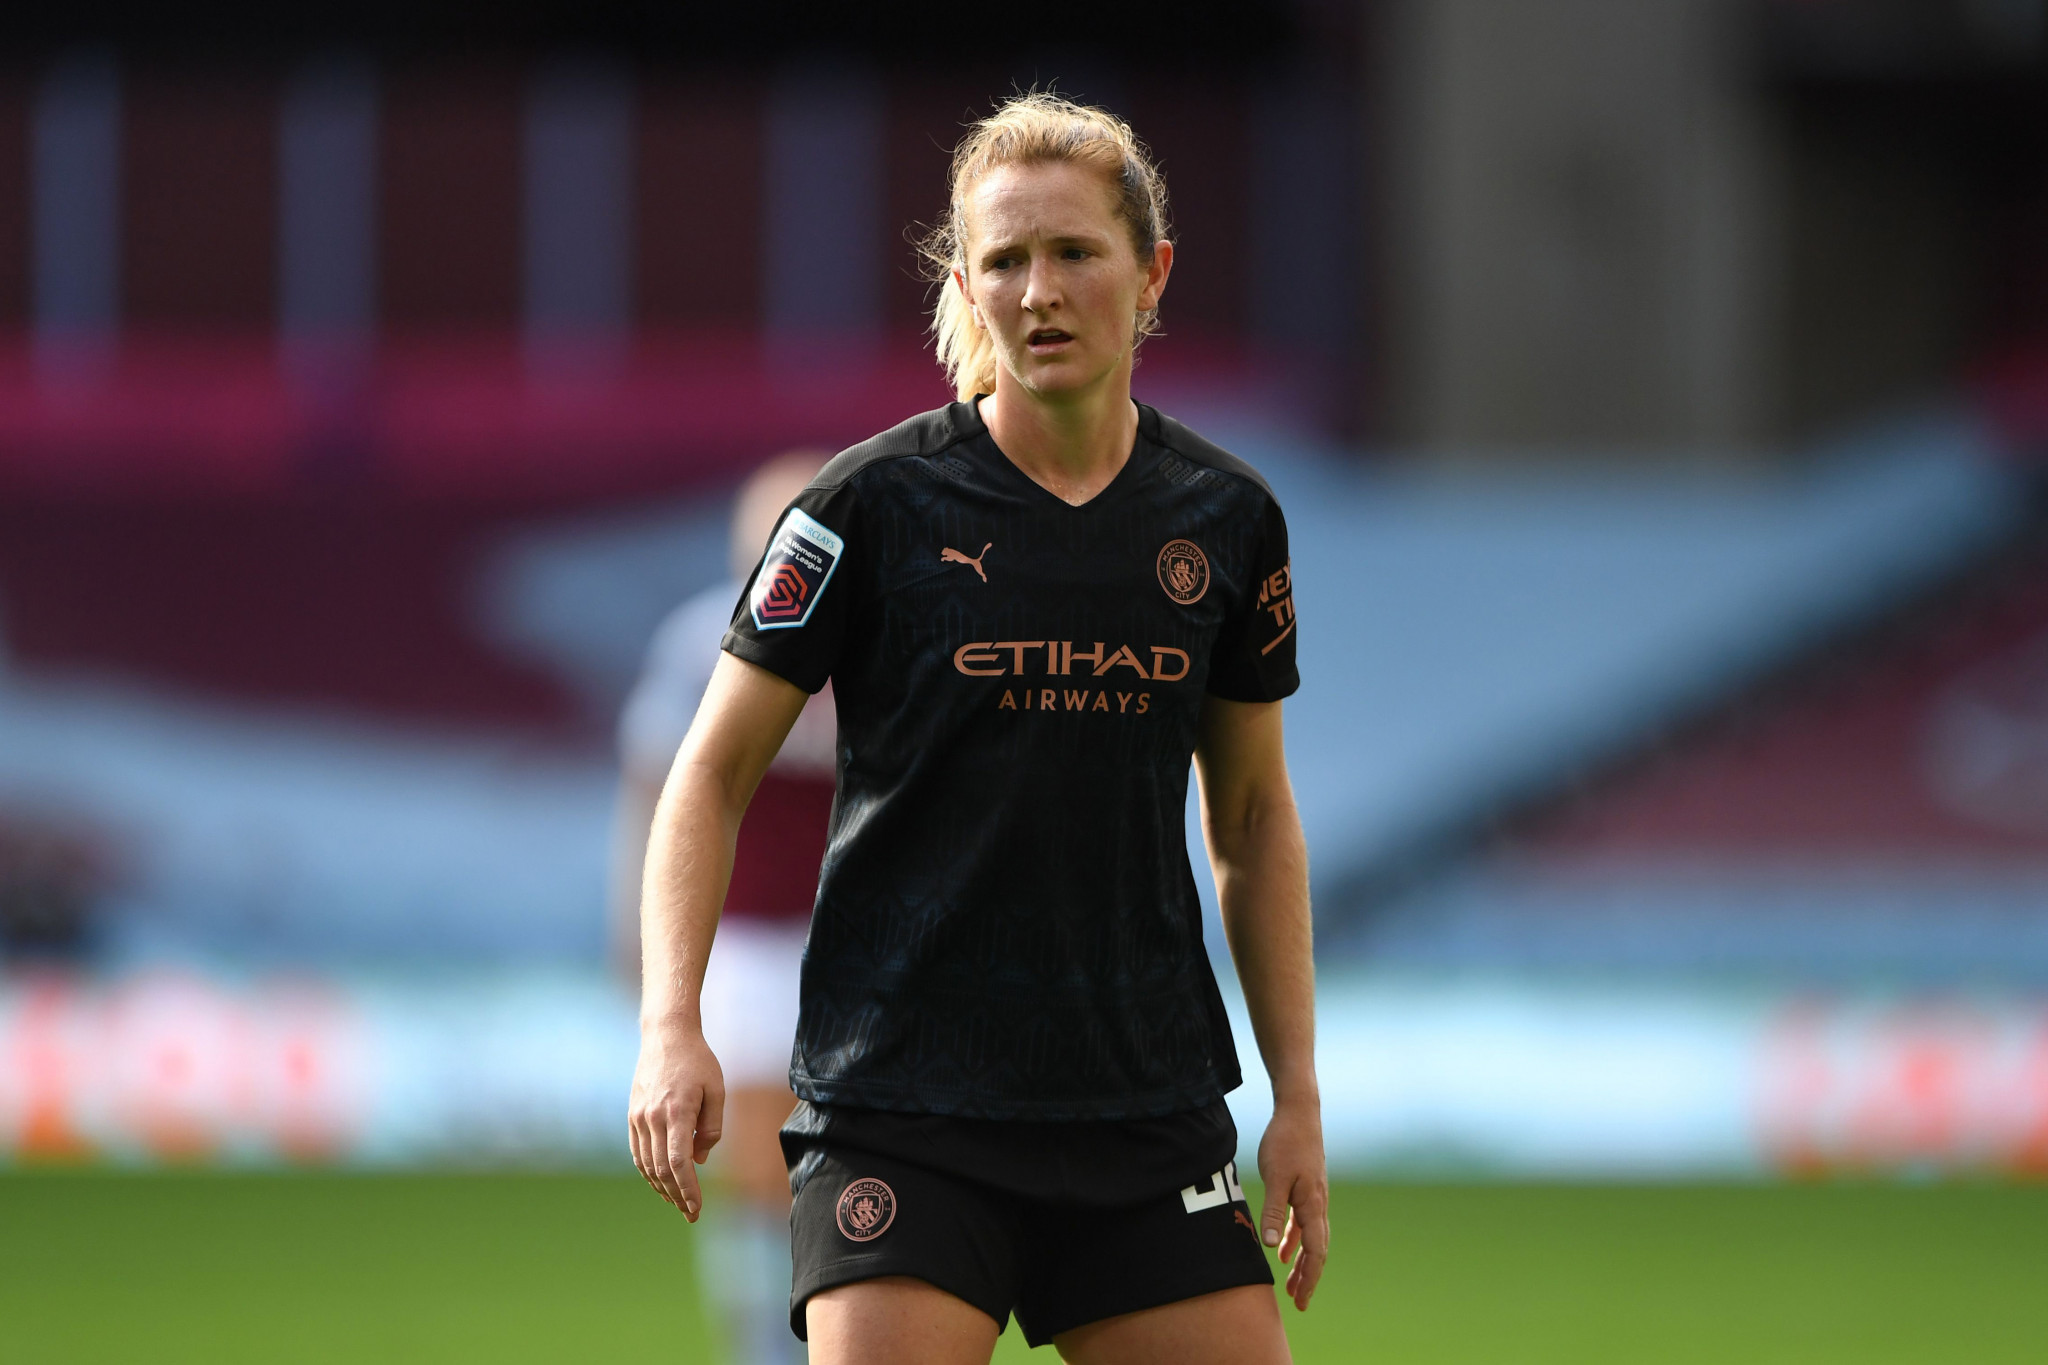 Sam Mewis is one of several American football players to sign for a FA Women's Super League team this season ©Getty Images